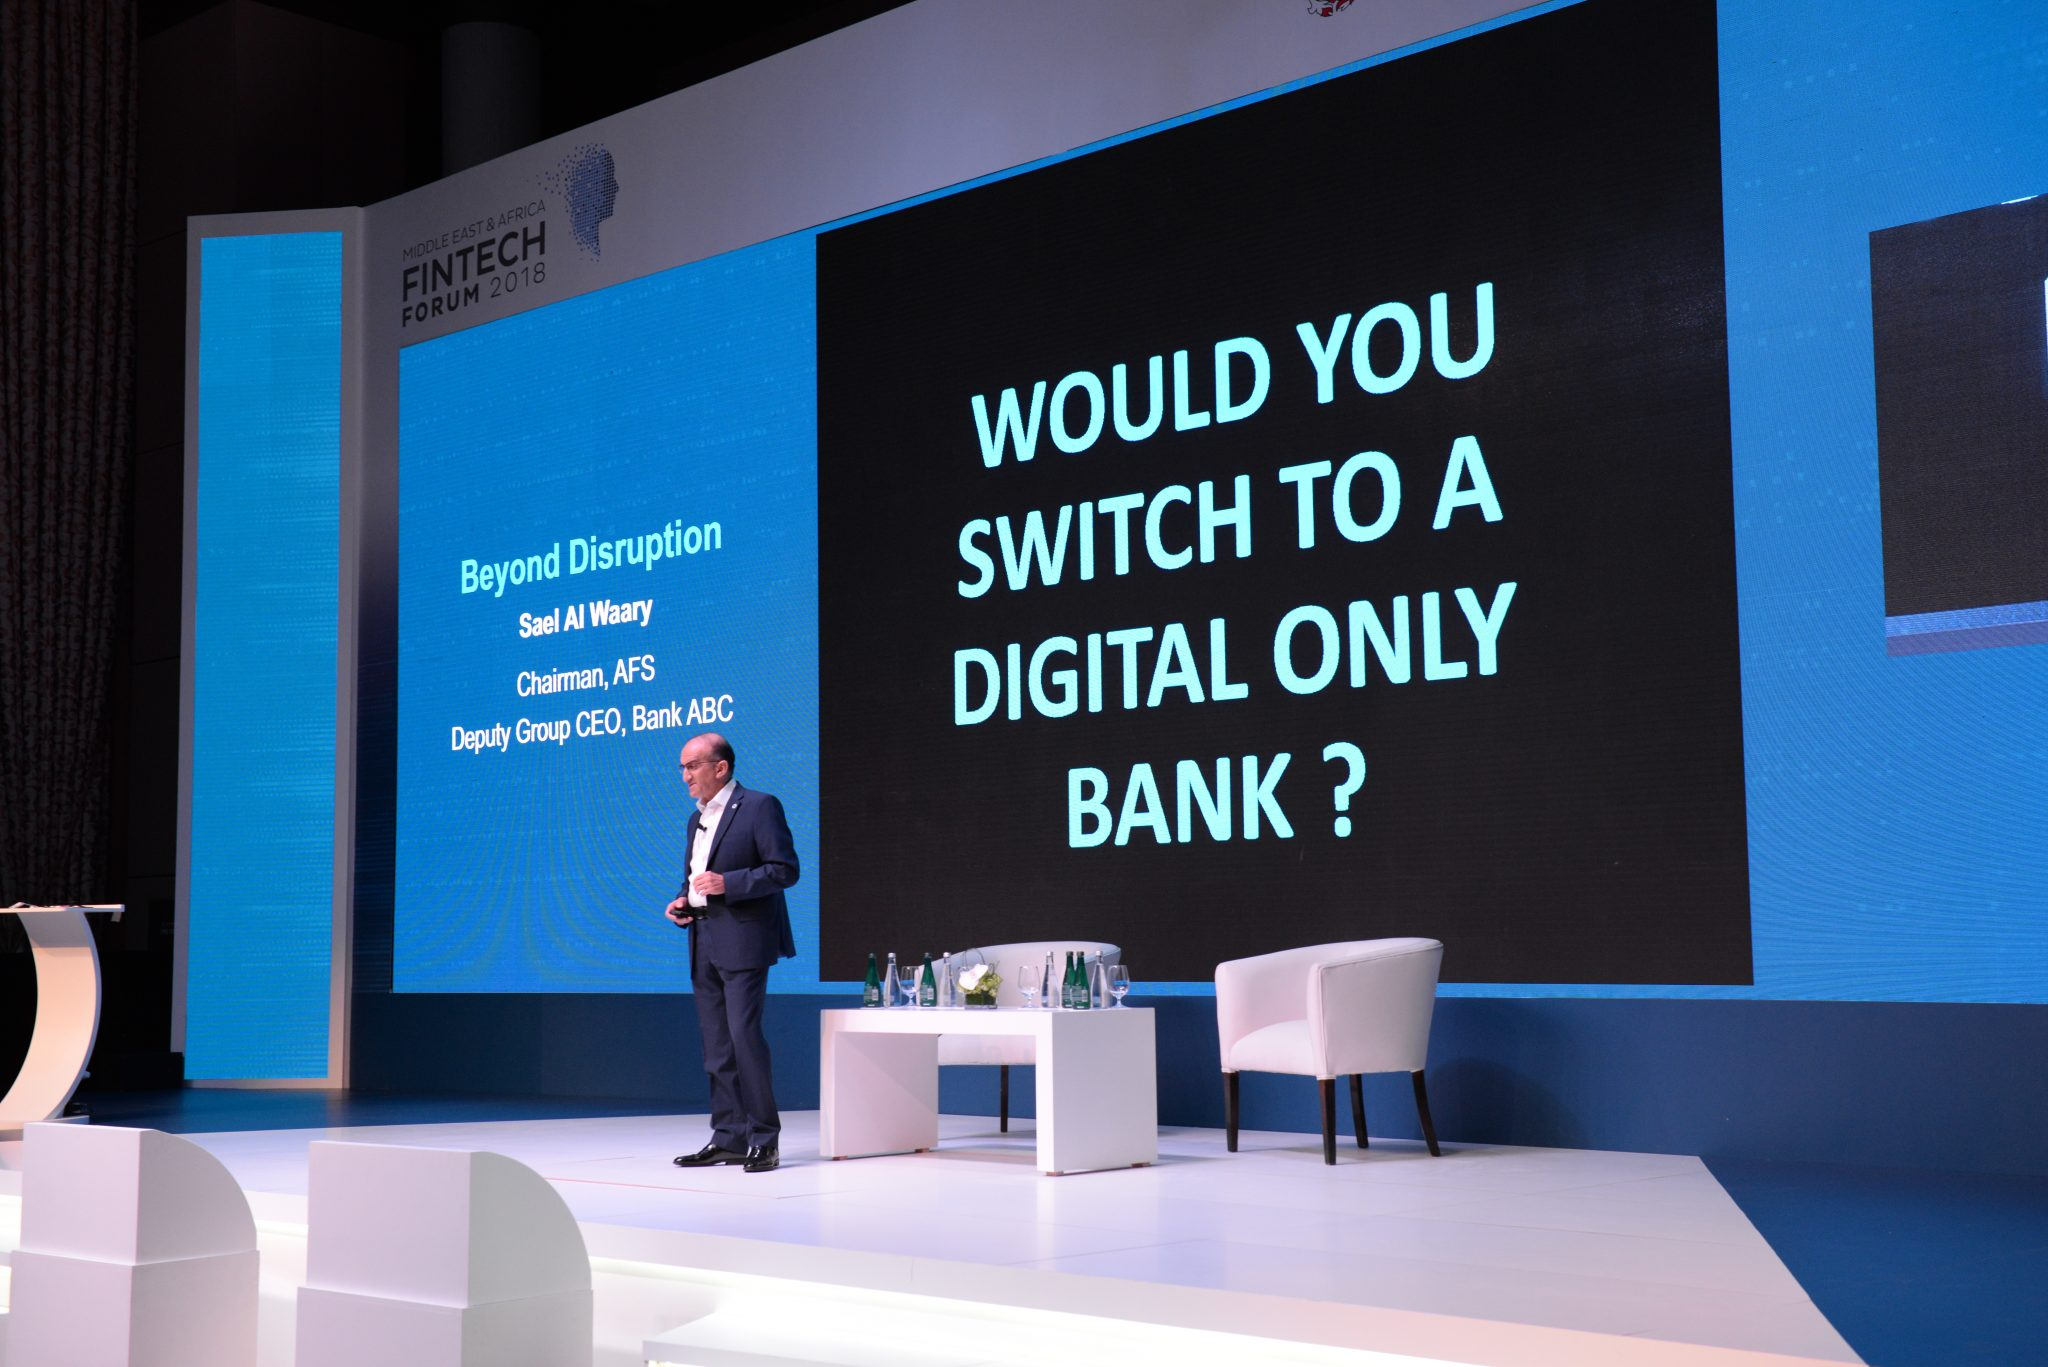 The largest FinTech Forum in the Middle East and Africa held in Manama, gathering the world's top FinTech and Artificial Intelligence expert